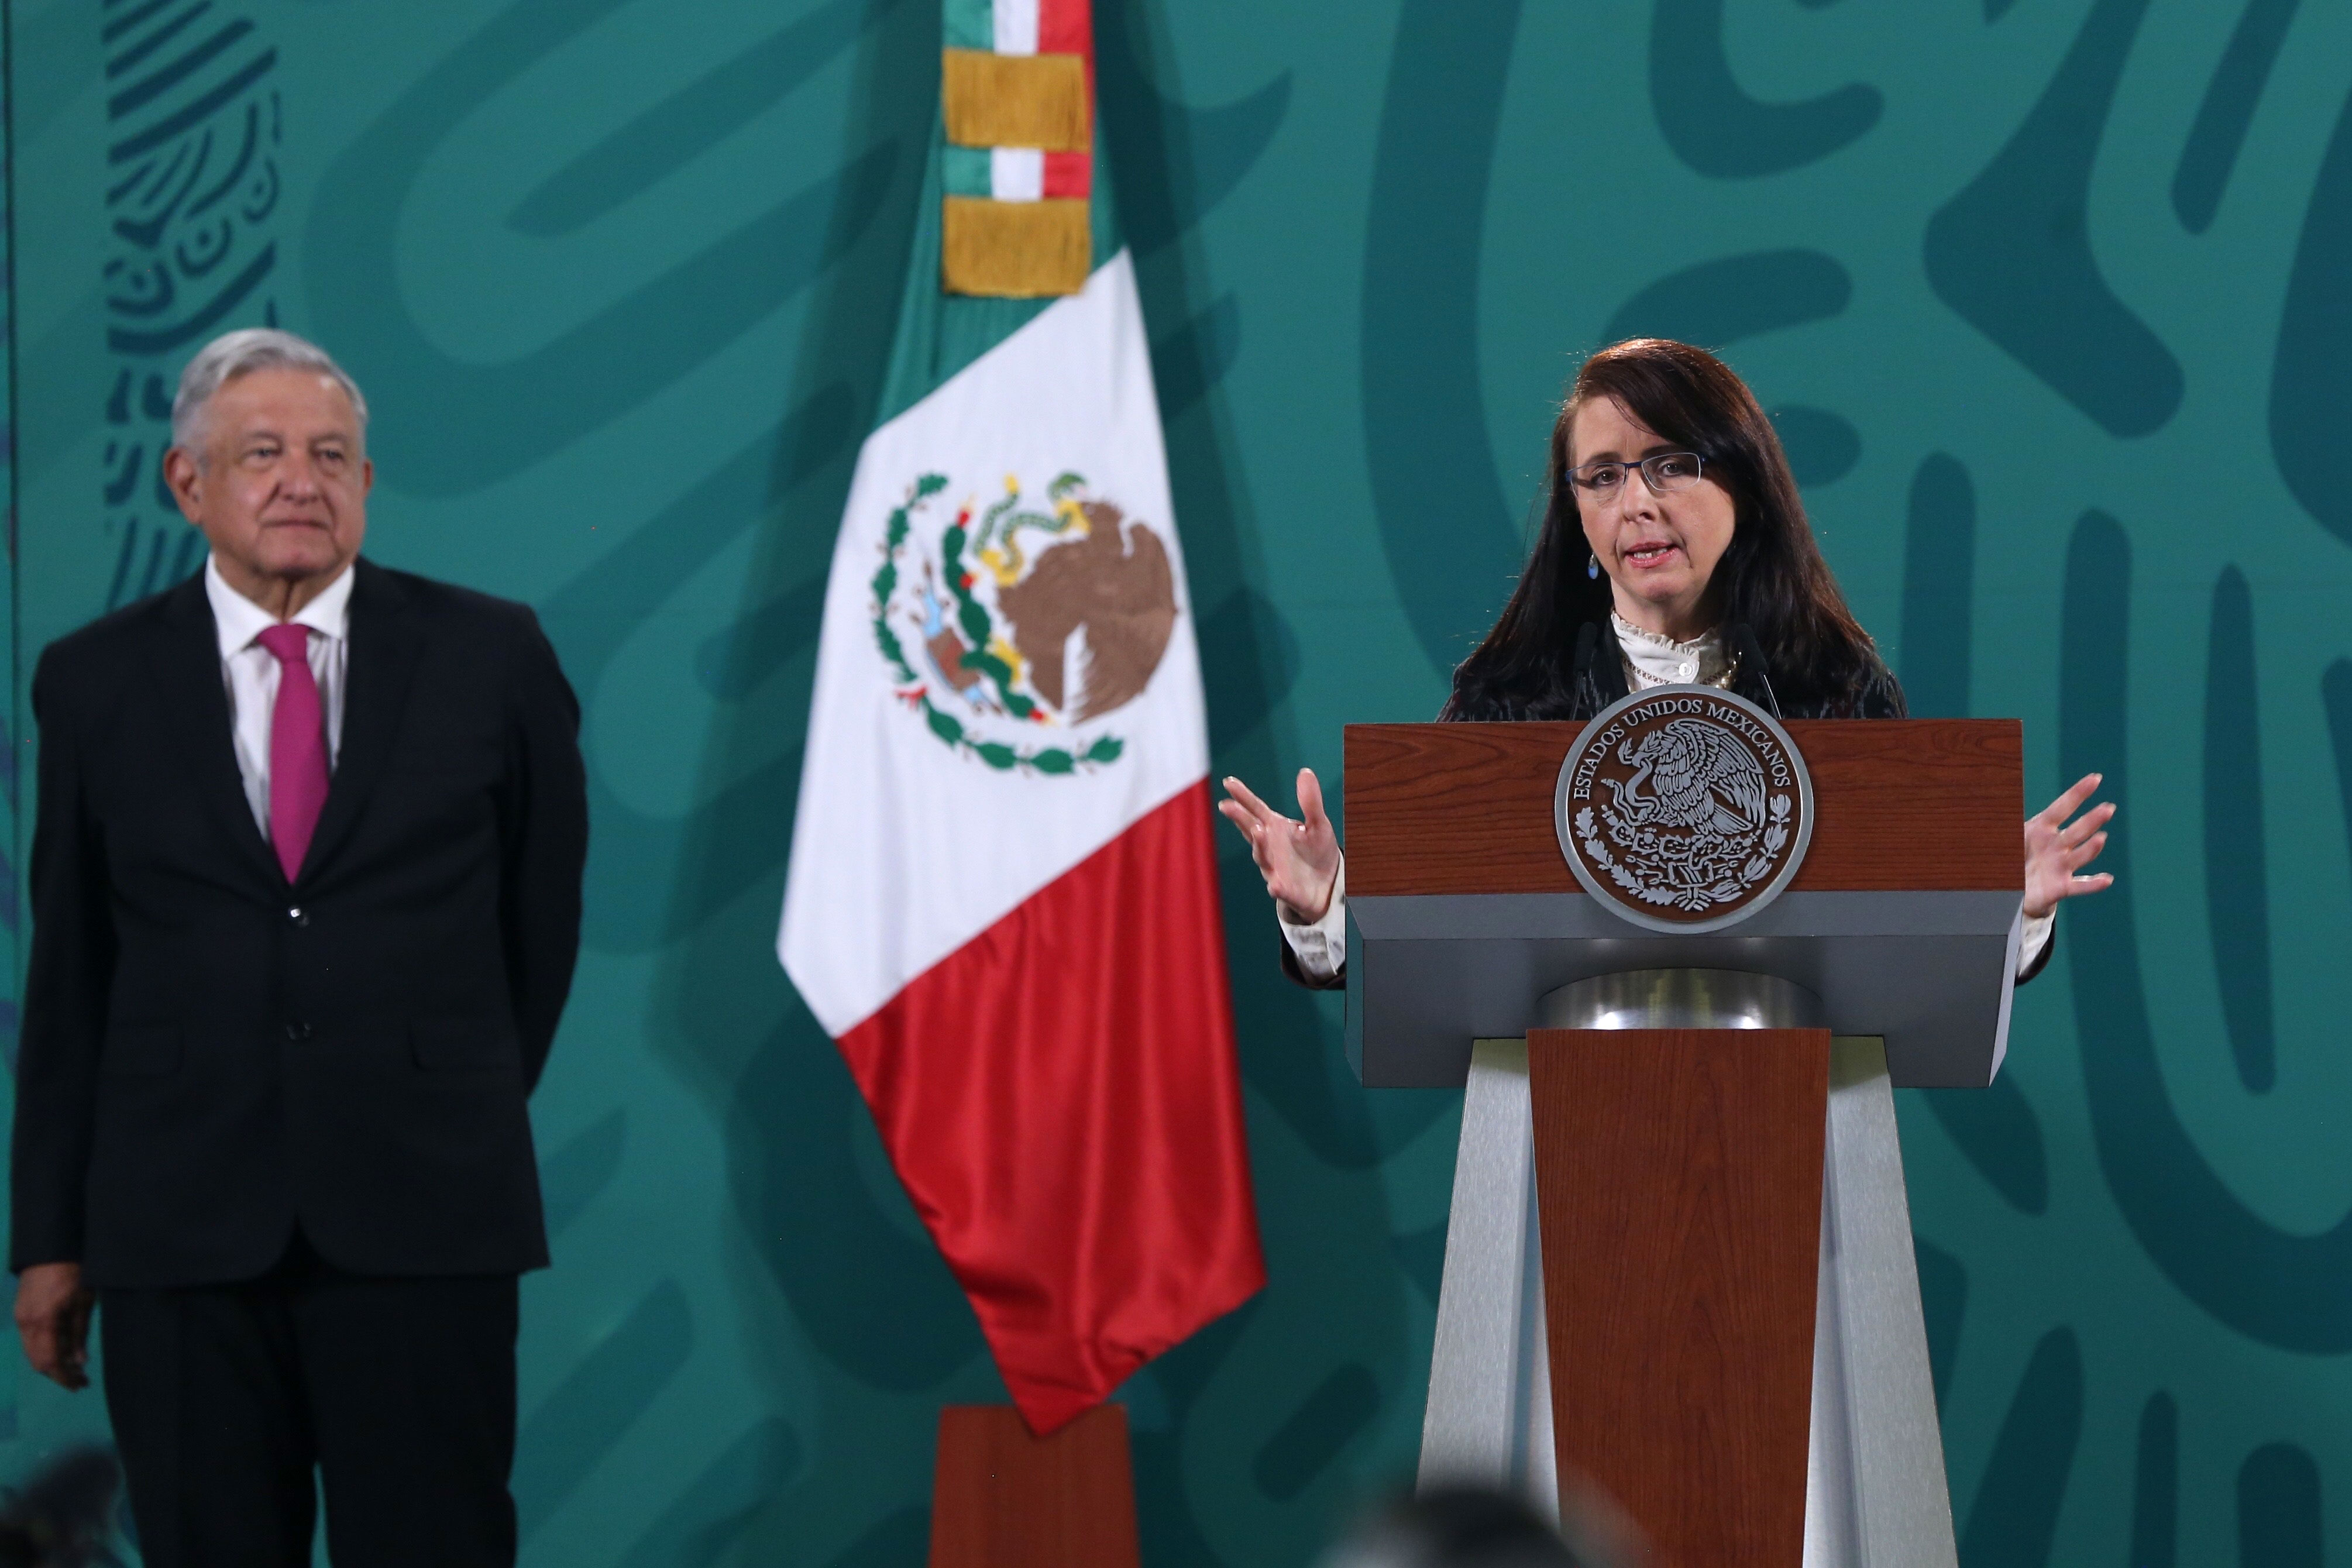 María Elena Álvarez-Buylla, director of the National Council of Science and Technology (Conacyt), speaks at a press conference in Mexico City on April 13.